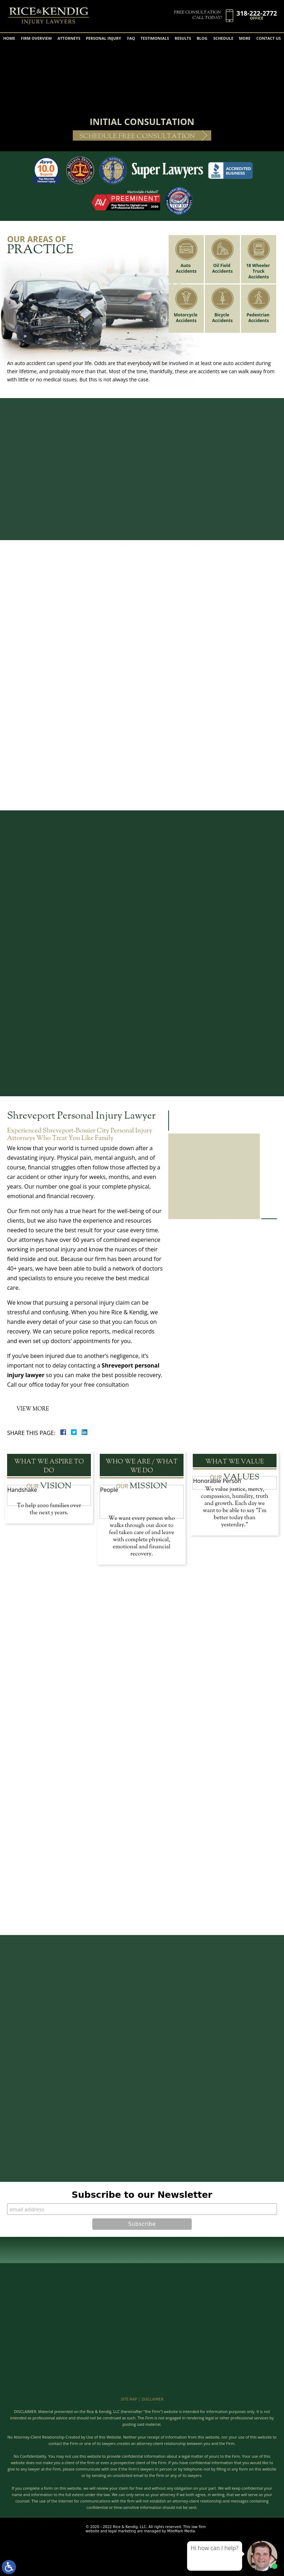 Rice & Kendig - Shreveport LA Lawyers